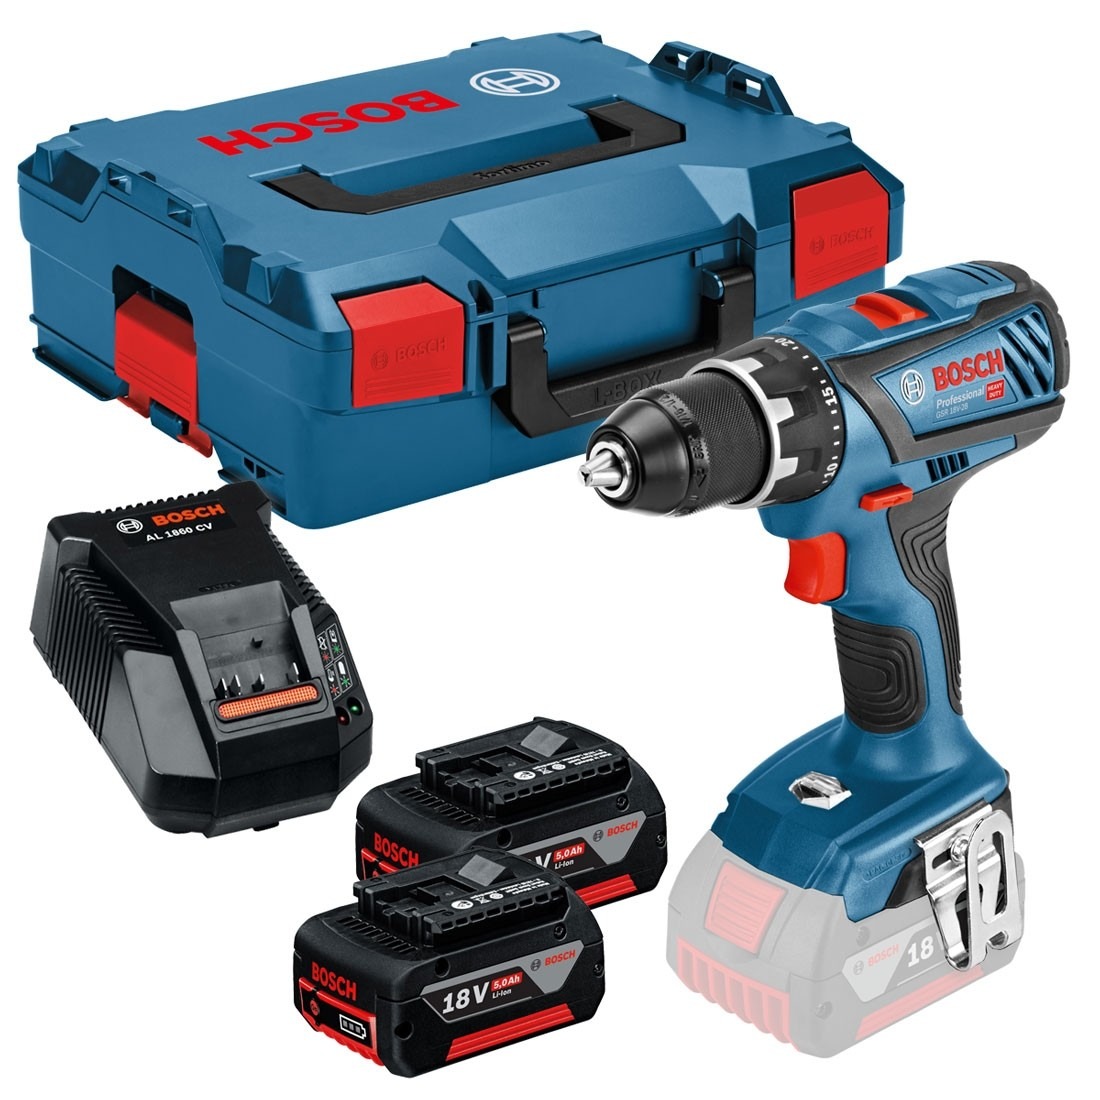 bosch gsr 18 v 28 drill driver inc 2x 5 0ah batteries. Black Bedroom Furniture Sets. Home Design Ideas